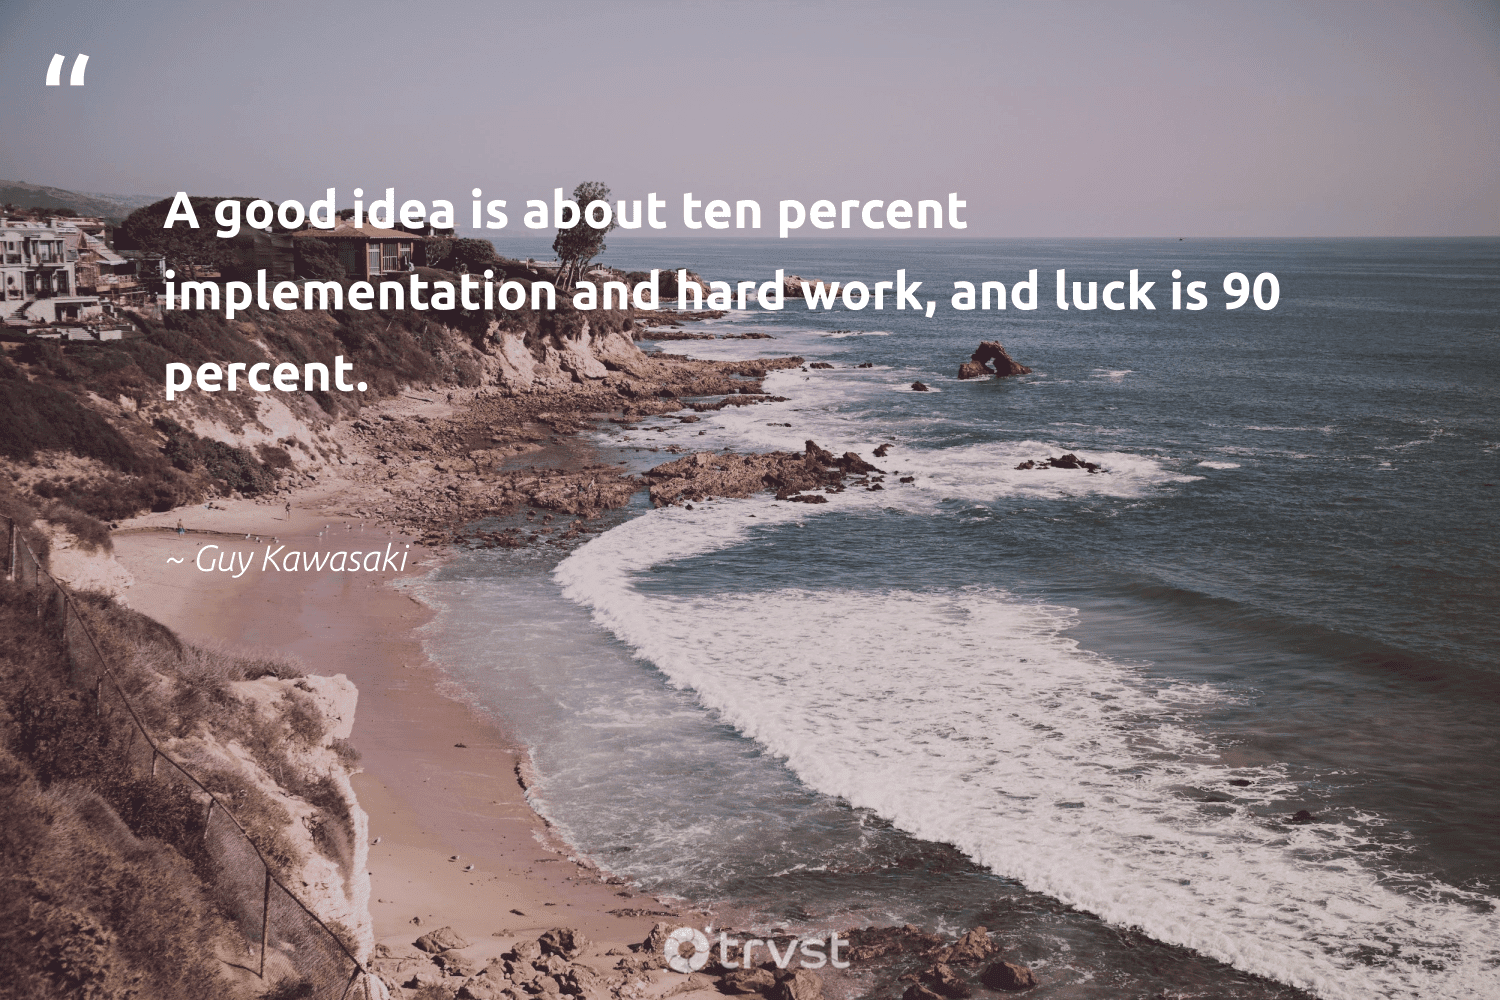 """""""A good idea is about ten percent implementation and hard work, and luck is 90 percent.""""  - Guy Kawasaki #trvst #quotes #begreat #planetearthfirst #futureofwork #ecoconscious #nevergiveup #bethechange #softskills #dotherightthing #thinkgreen #takeaction"""